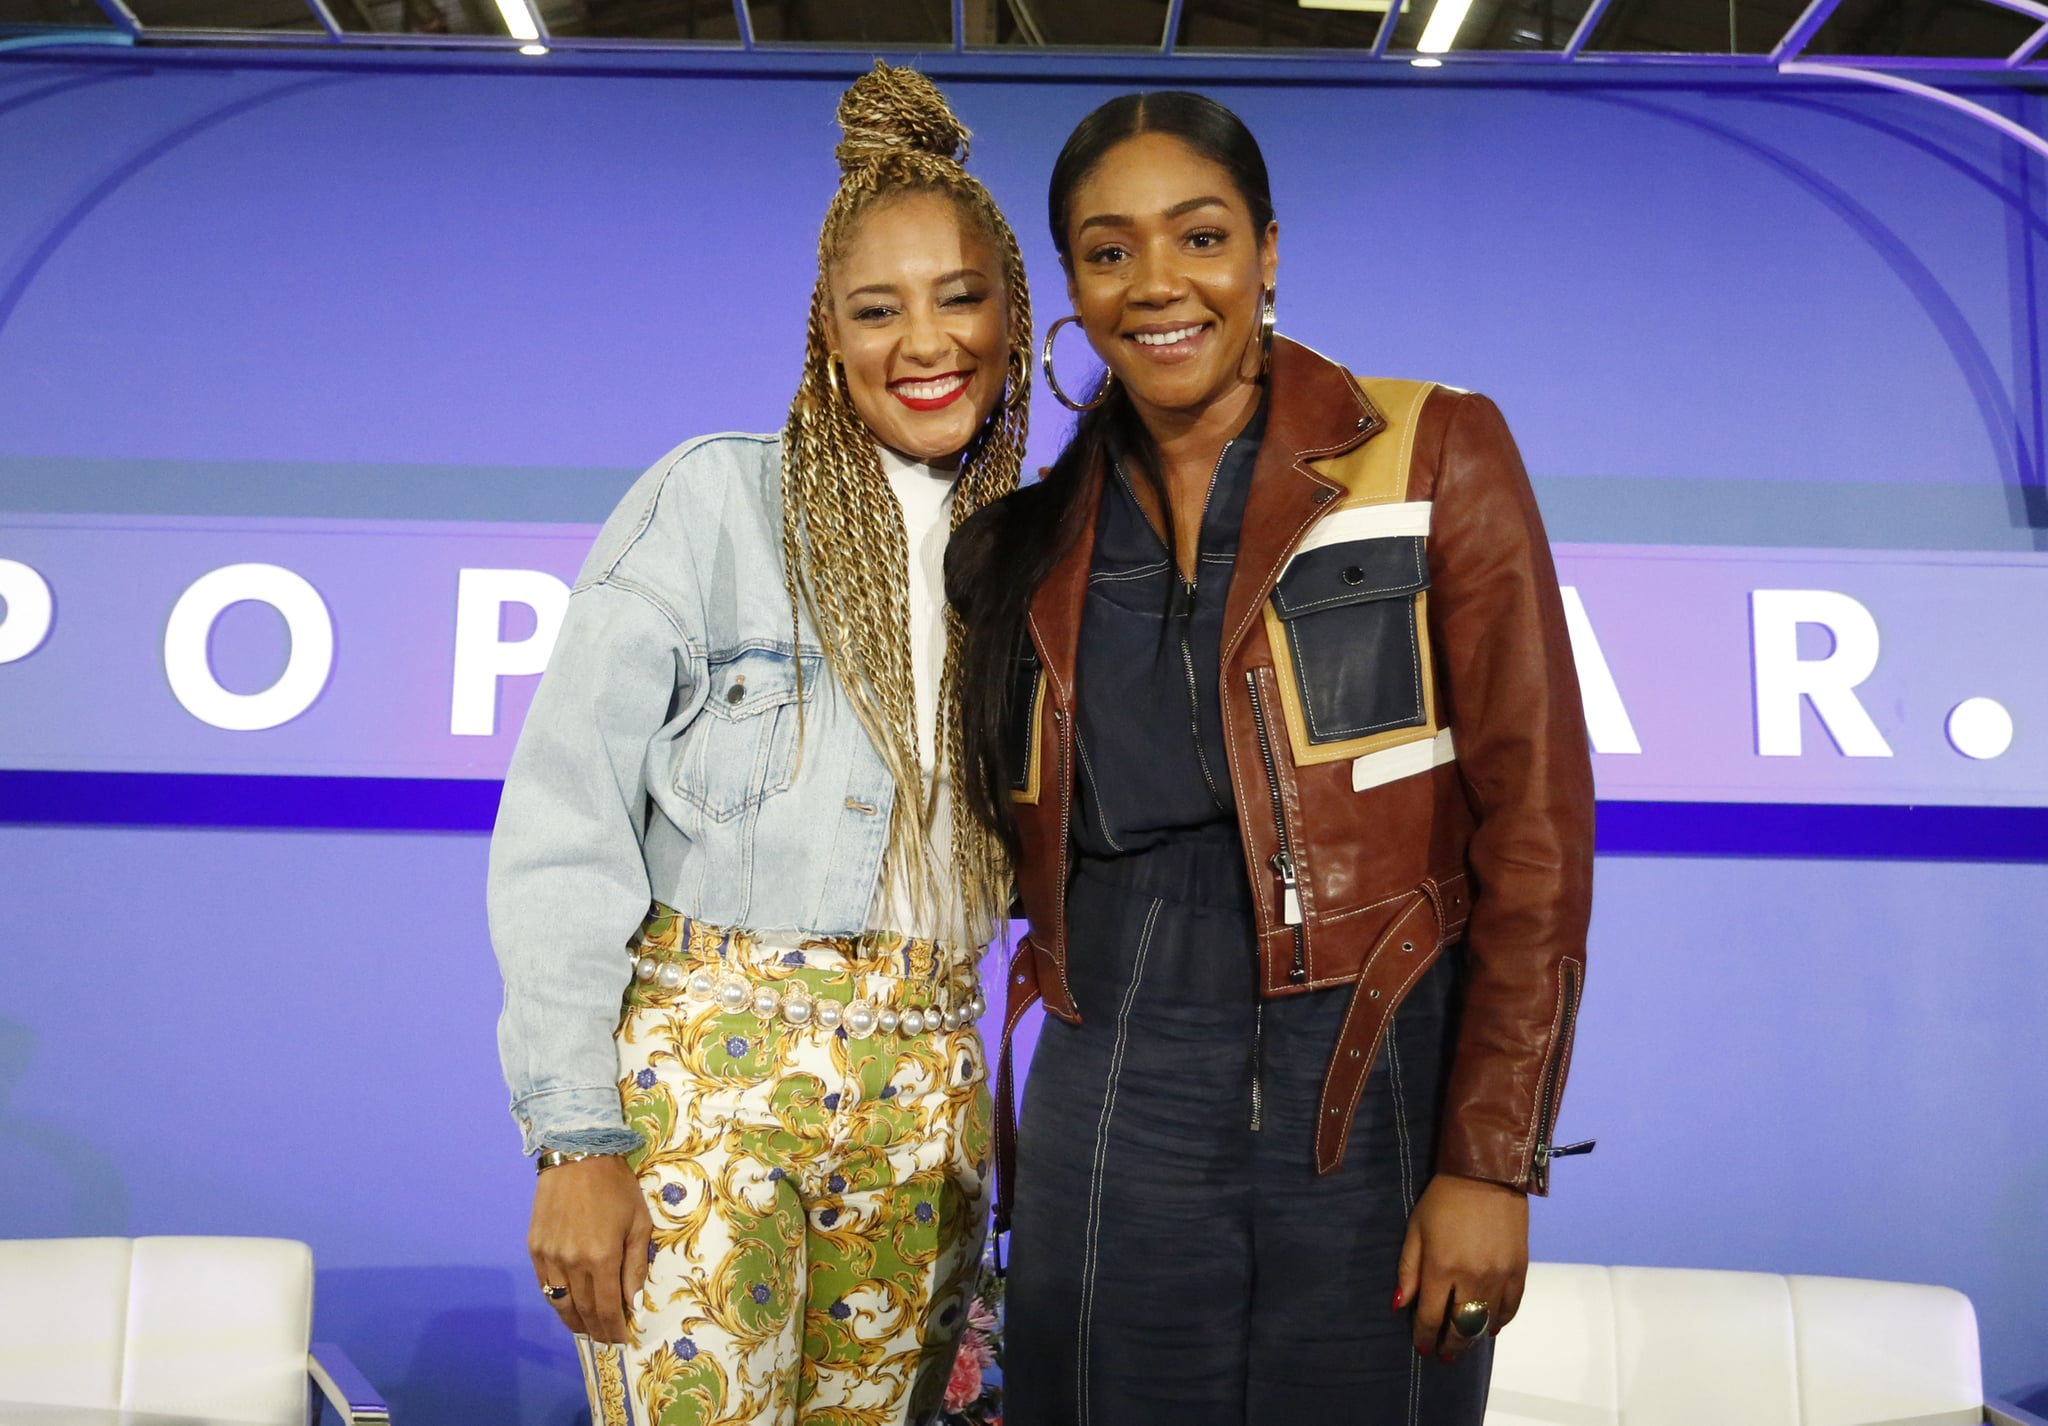 Pictured: Amanda Seales and Tiffany Haddish